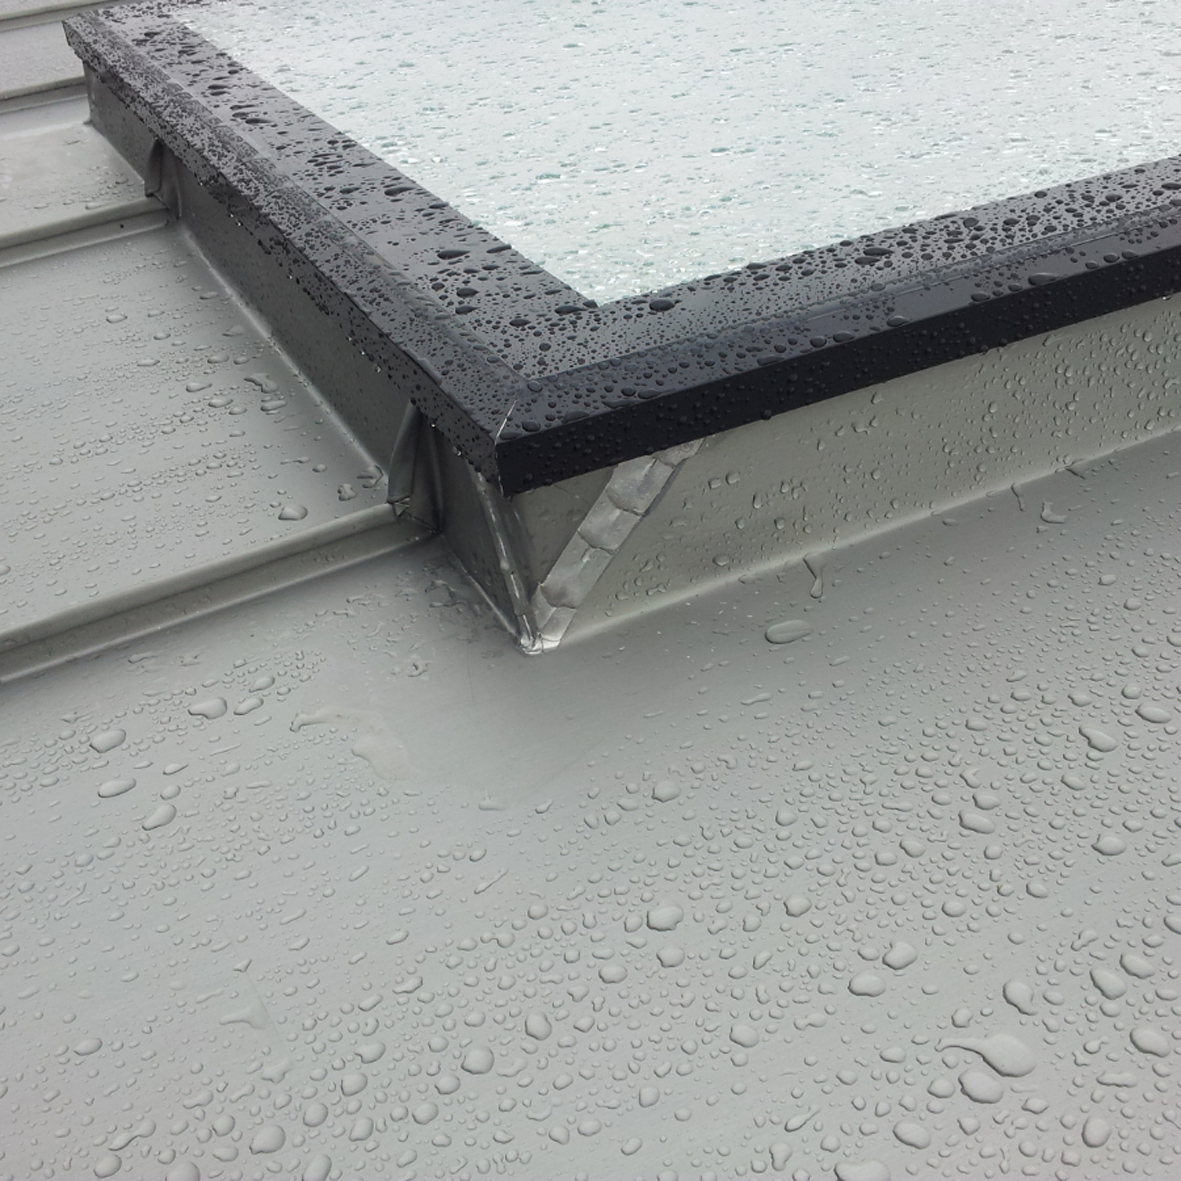 100mm upstand shown at the foot of a rooflight